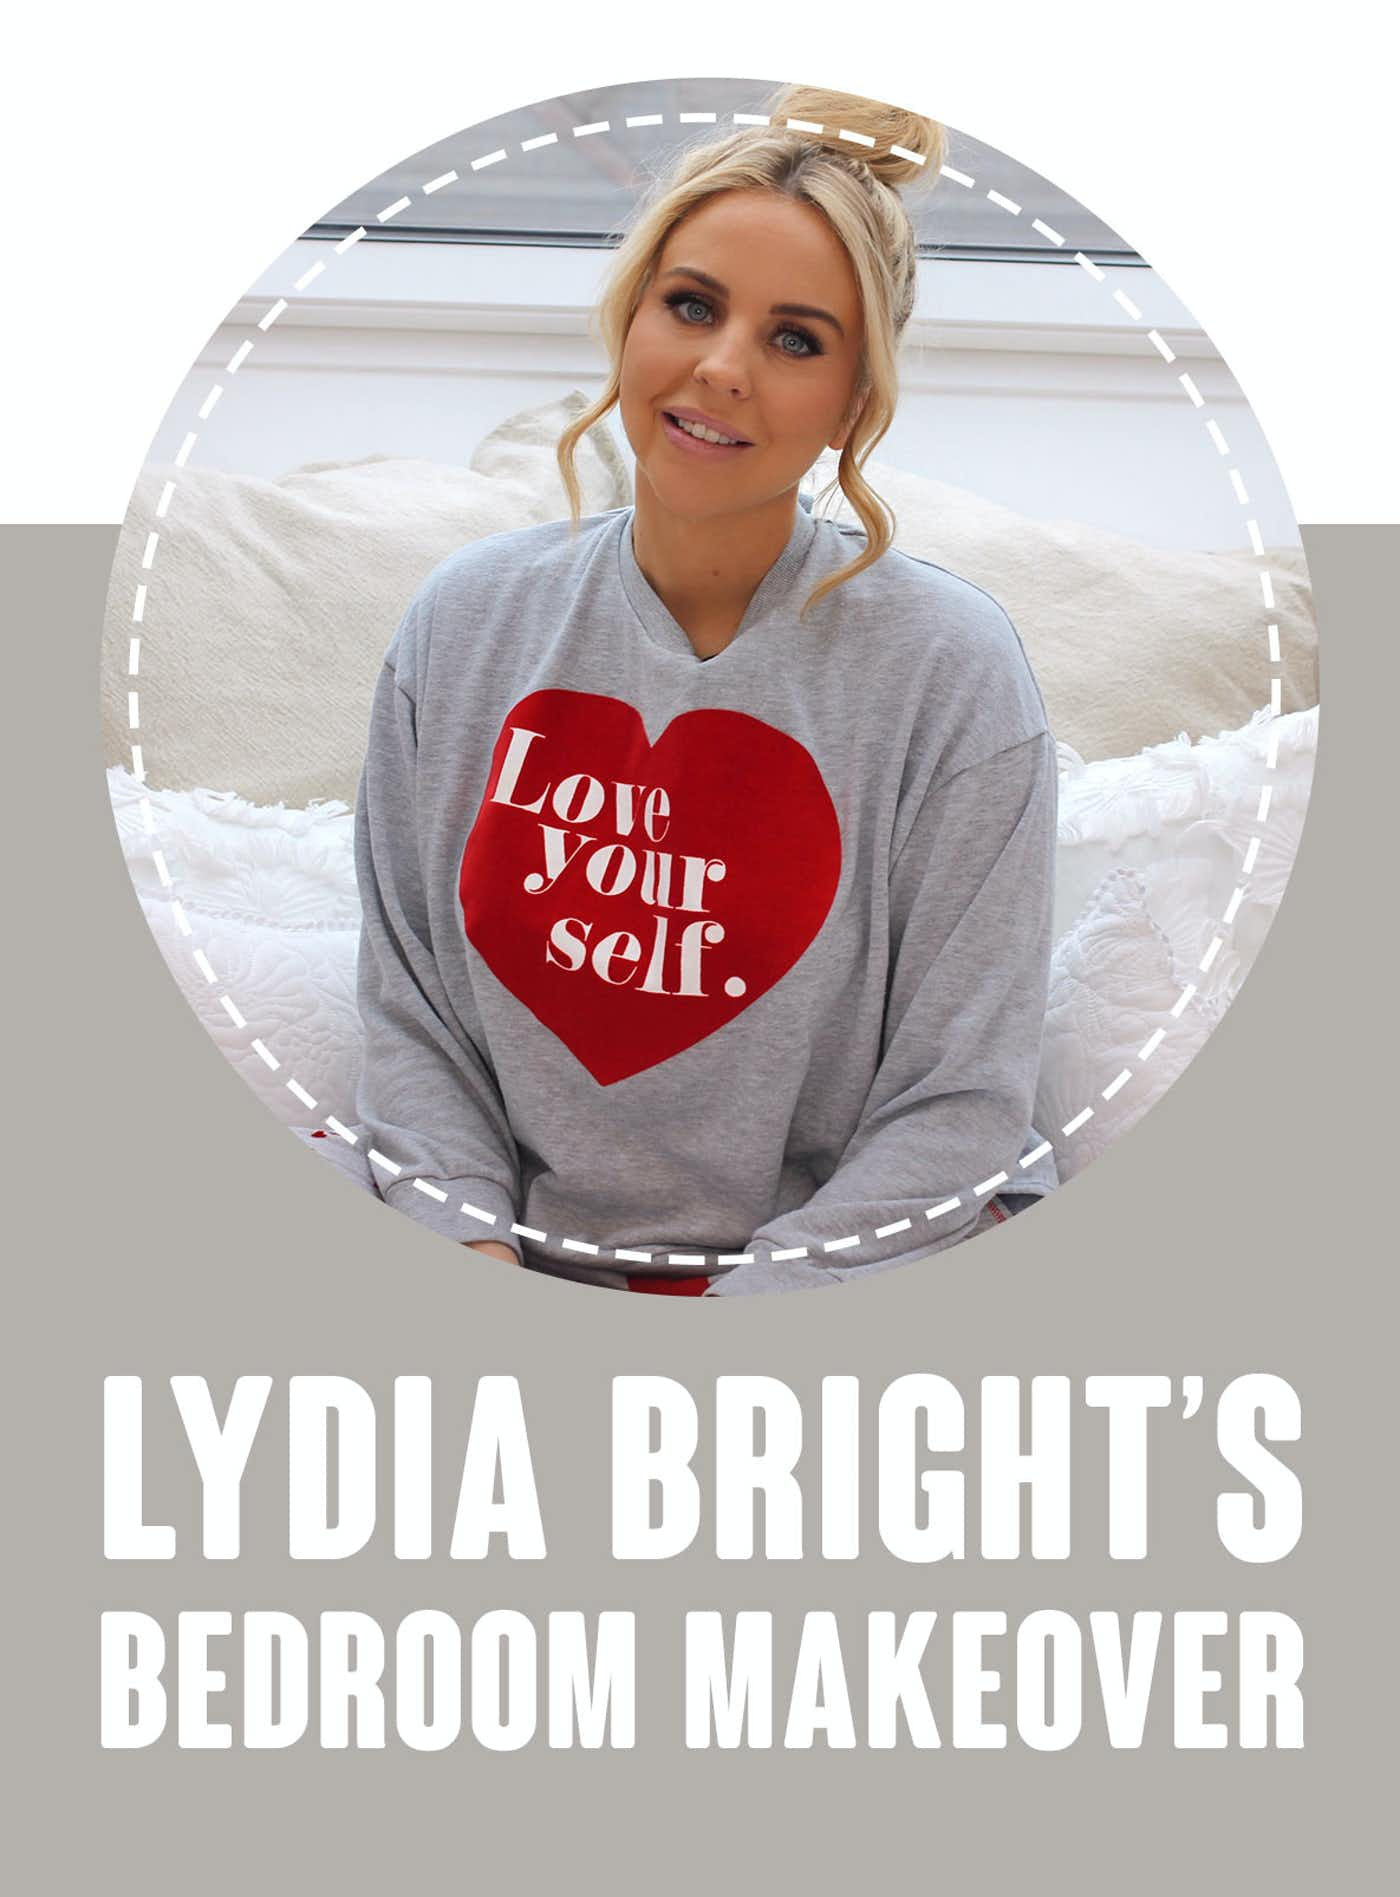 Lydia Bright's Bedroom Makeover